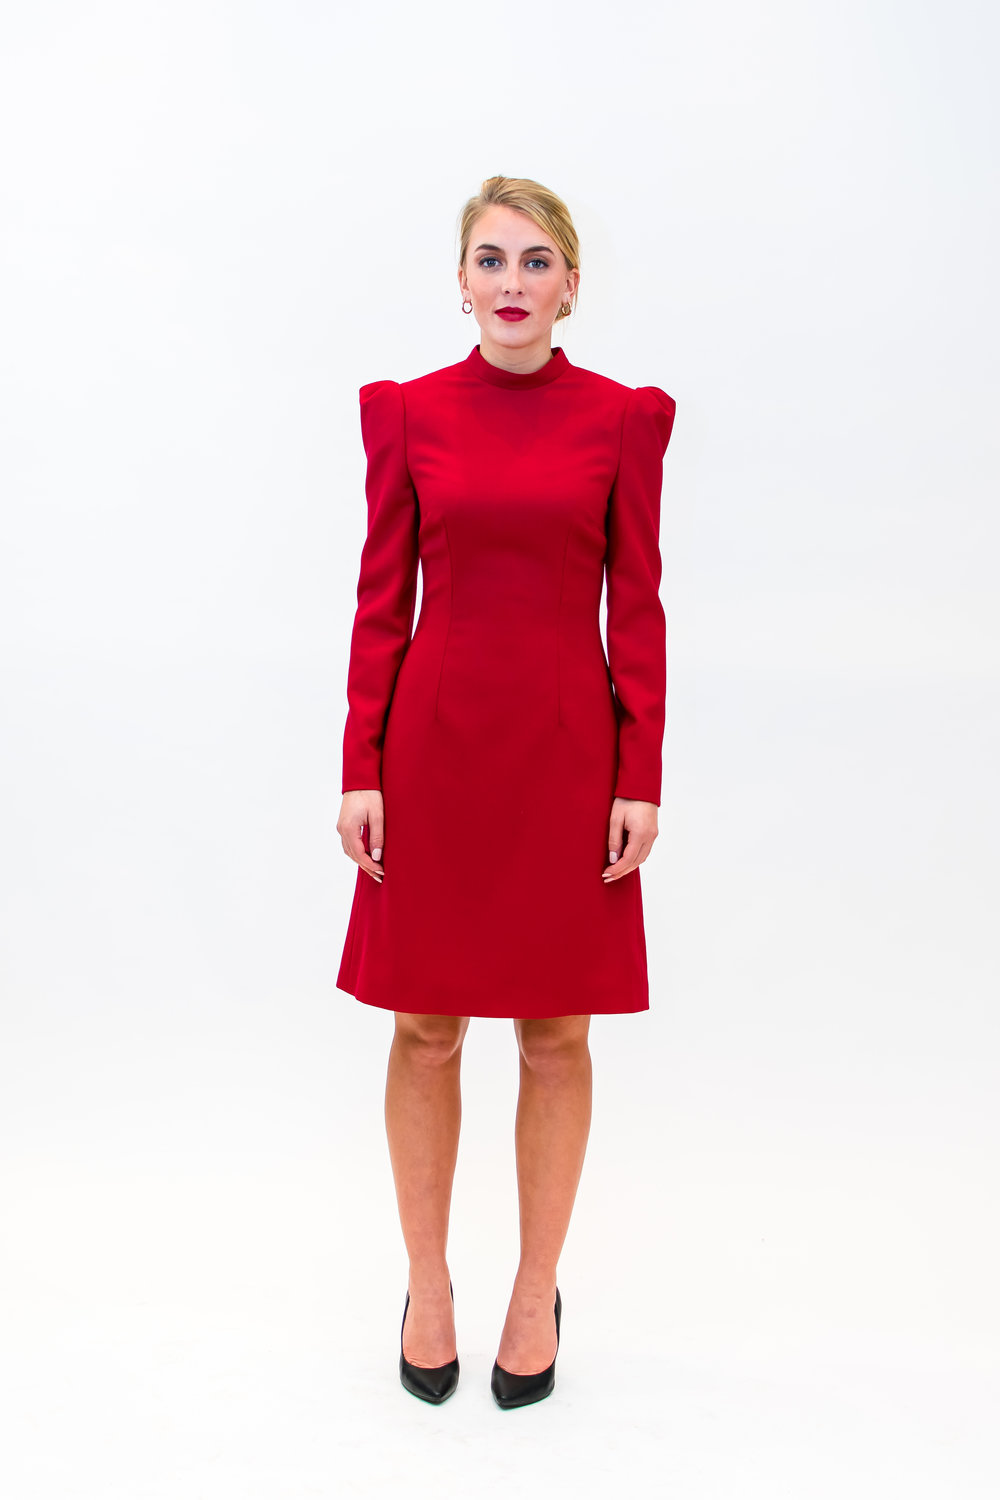 Long sleeve dress with stand up collar